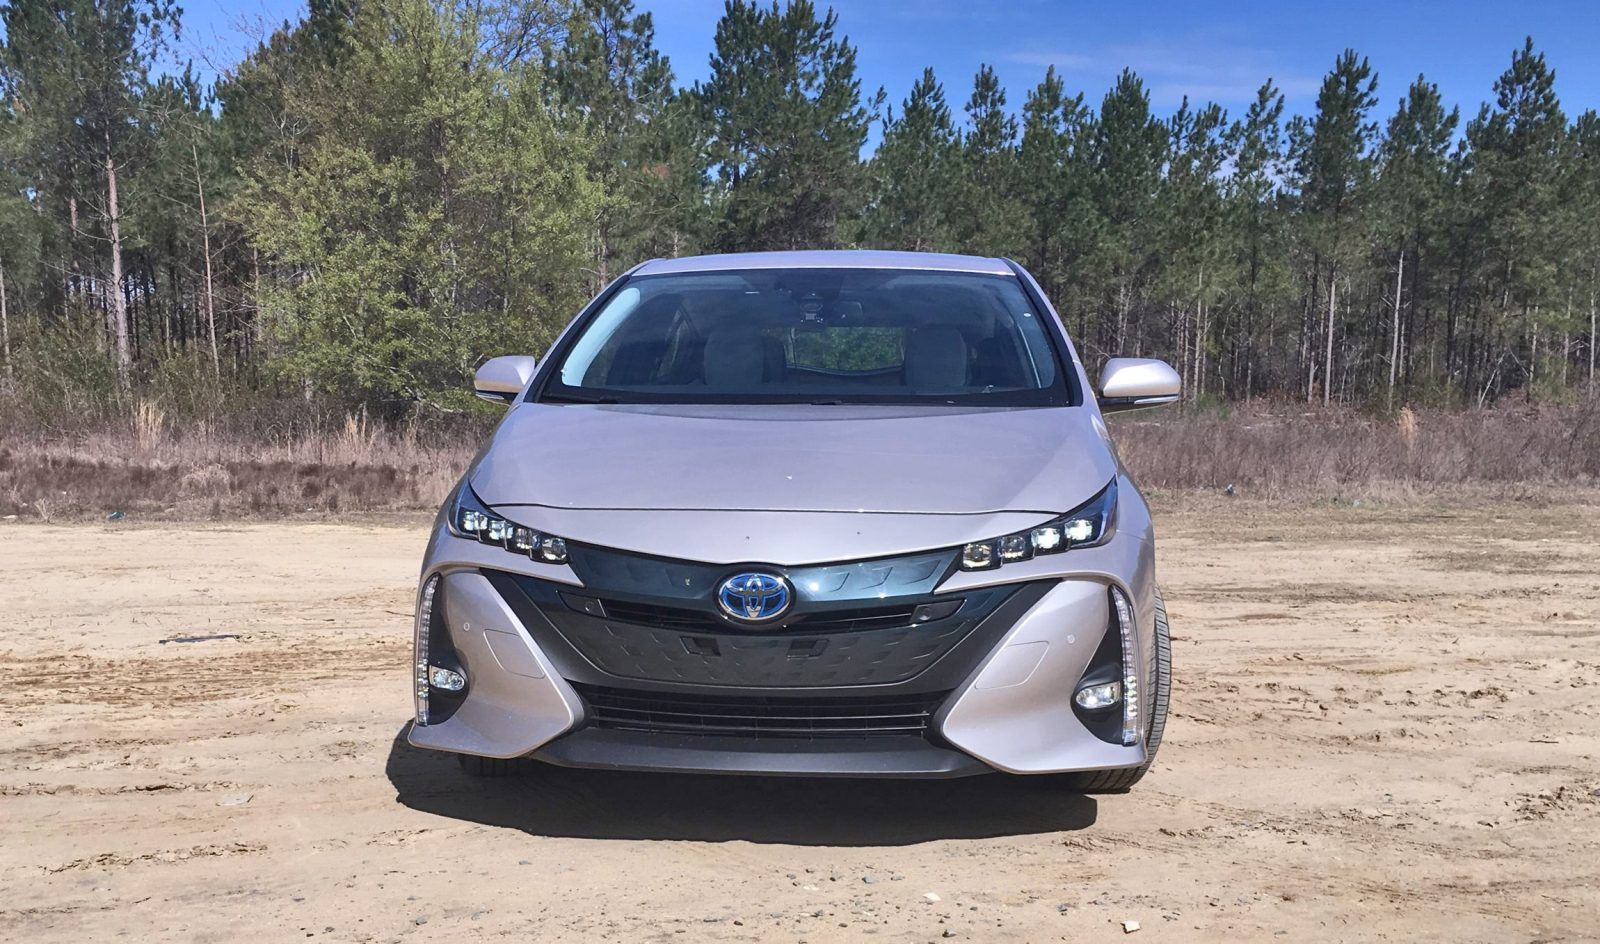 2017 toyota prius prime hd road test review. Black Bedroom Furniture Sets. Home Design Ideas